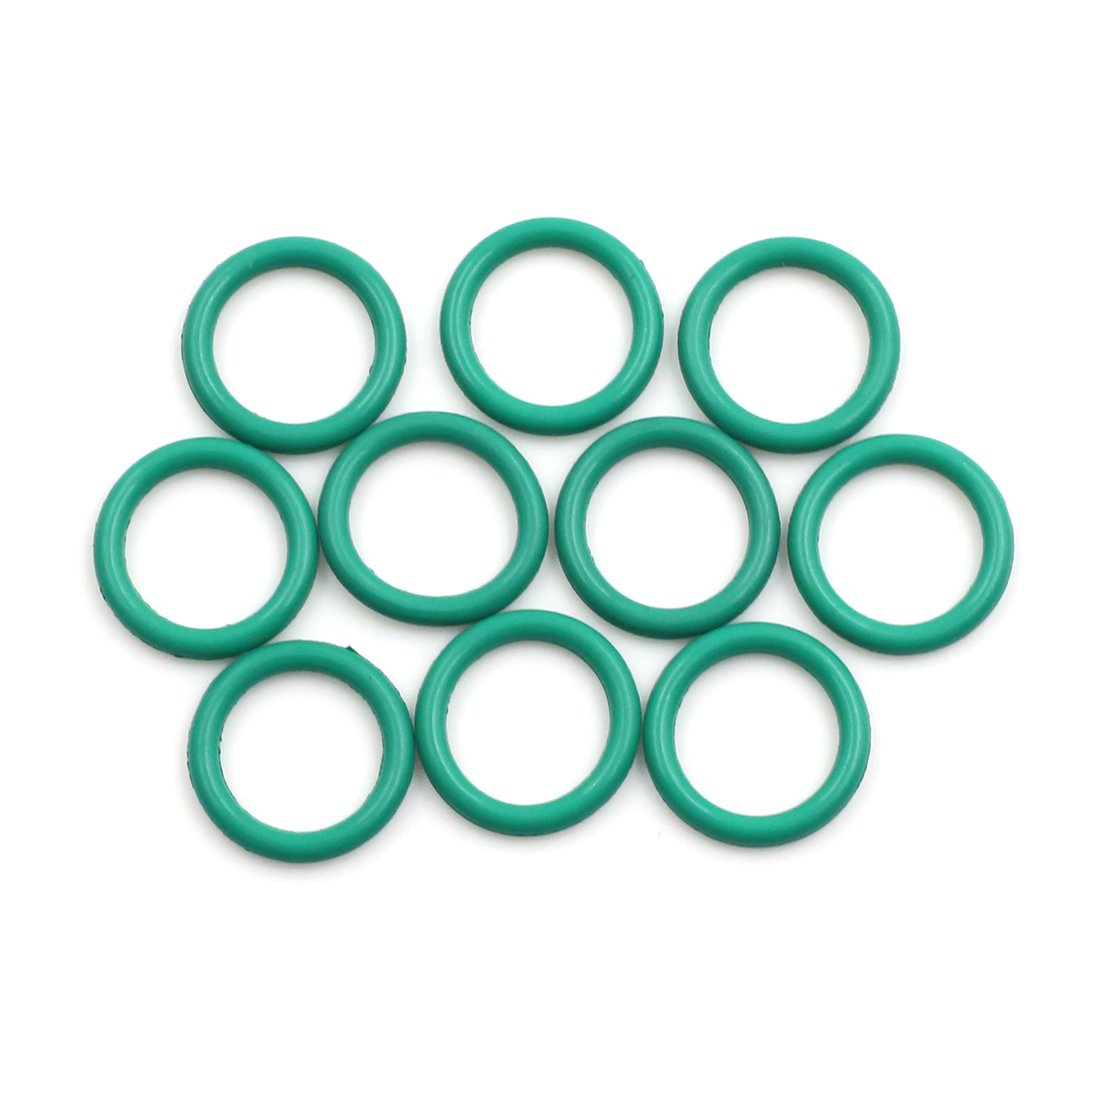 10pcs Green Fluorine Rubber O-Ring Seal Gasket Washer for Car 17 x 2.5mm